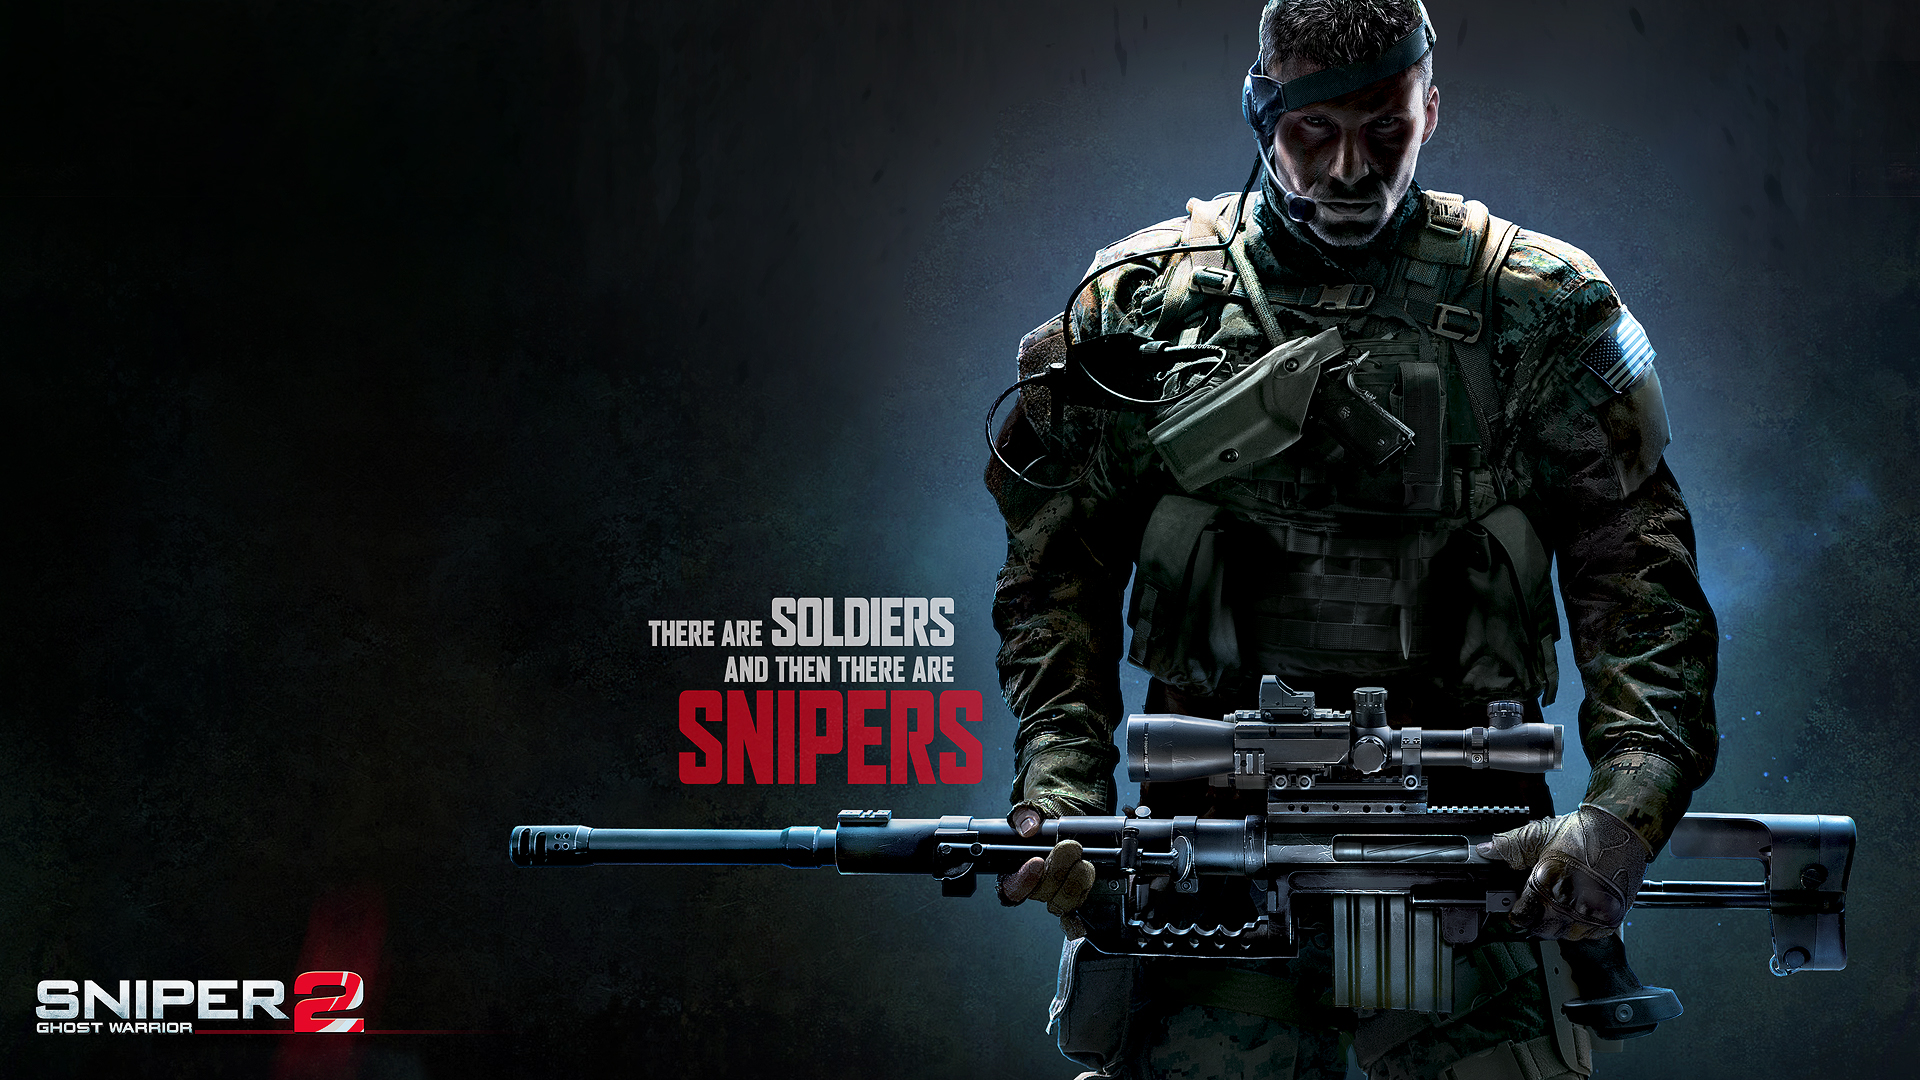 Buy Sniper Ghost Warrior Trilogy 2015 PC Game